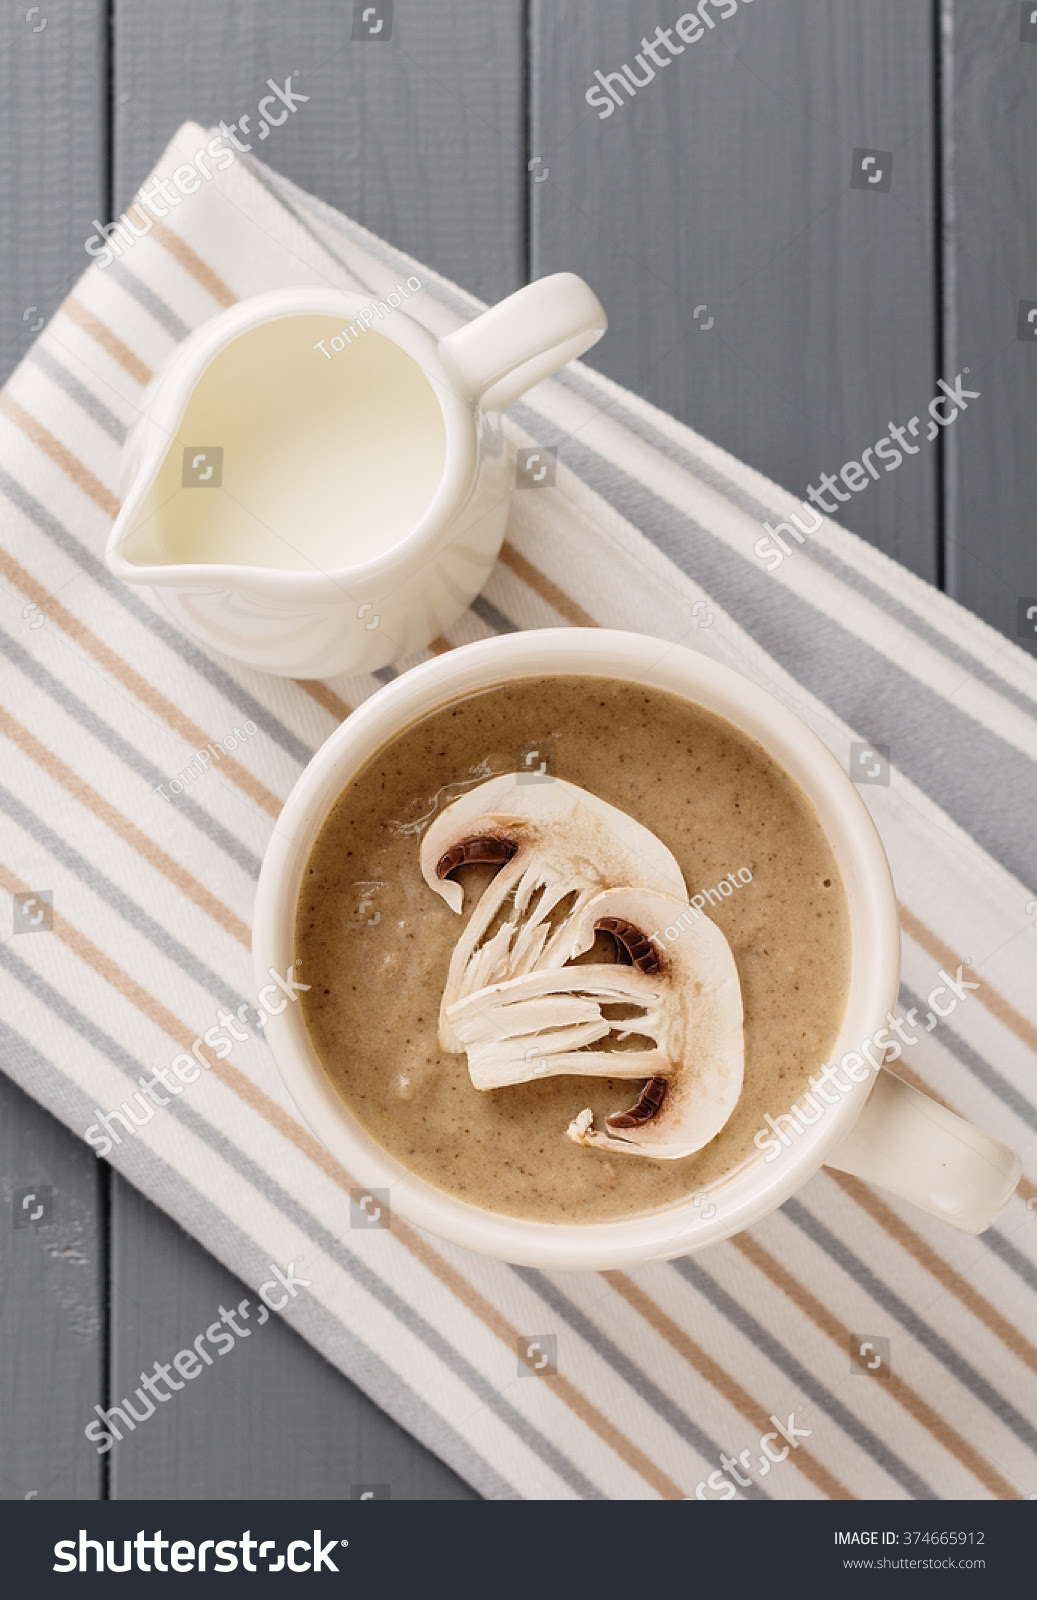 http://www.shutterstock.com/pic-374665912/stock-photo-creamy-mushroom-soup-in-a-big-cup-decorated-with-sliced-champignons-on-gray-background-top-view.html